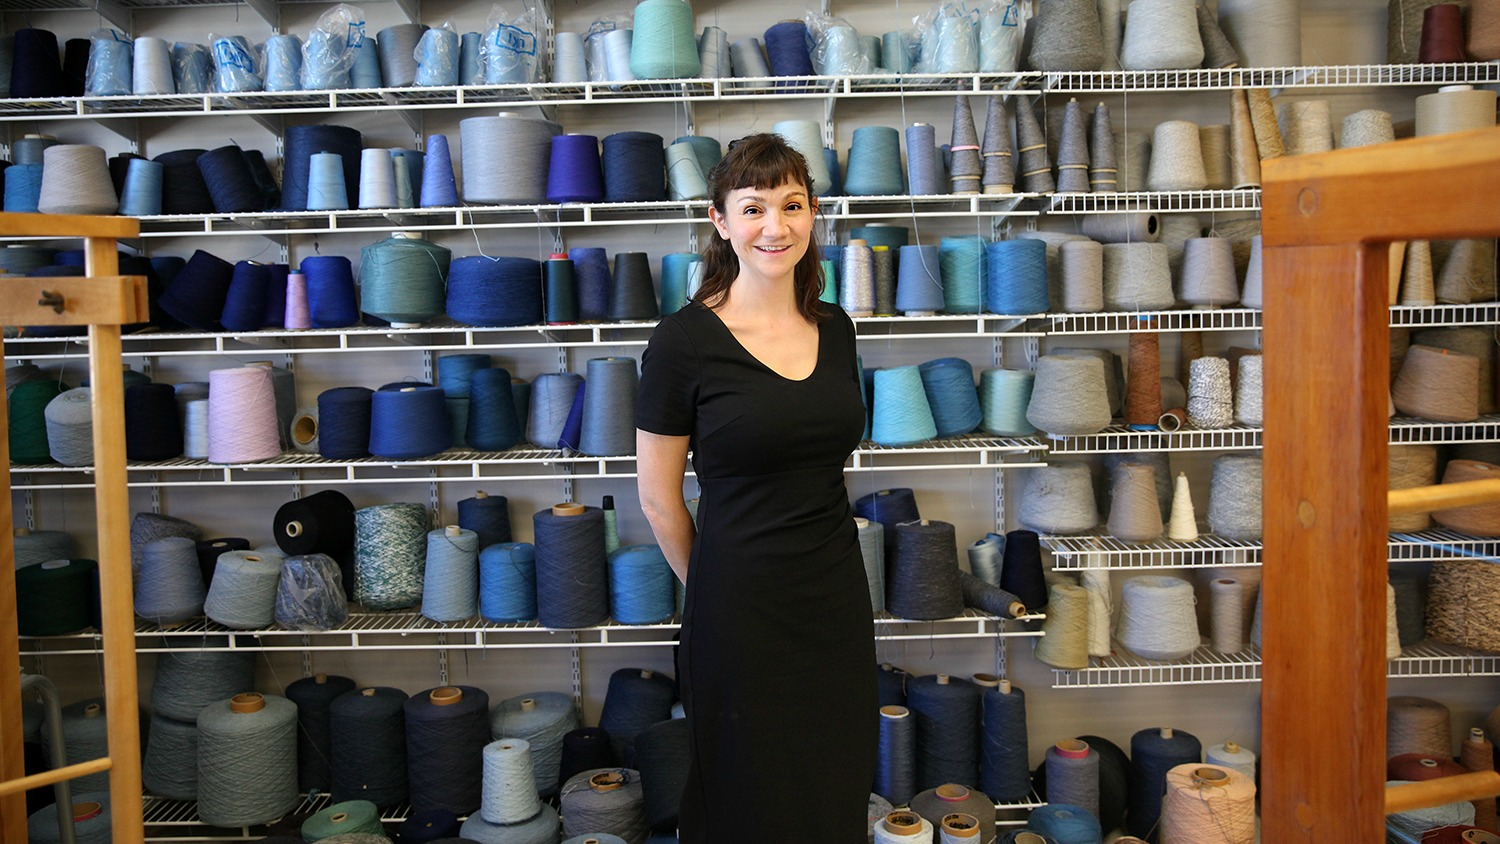 NC State TATM assistant professor Janie Woodbridge stands in front of rows of yarn in ombre hues of blue and gray